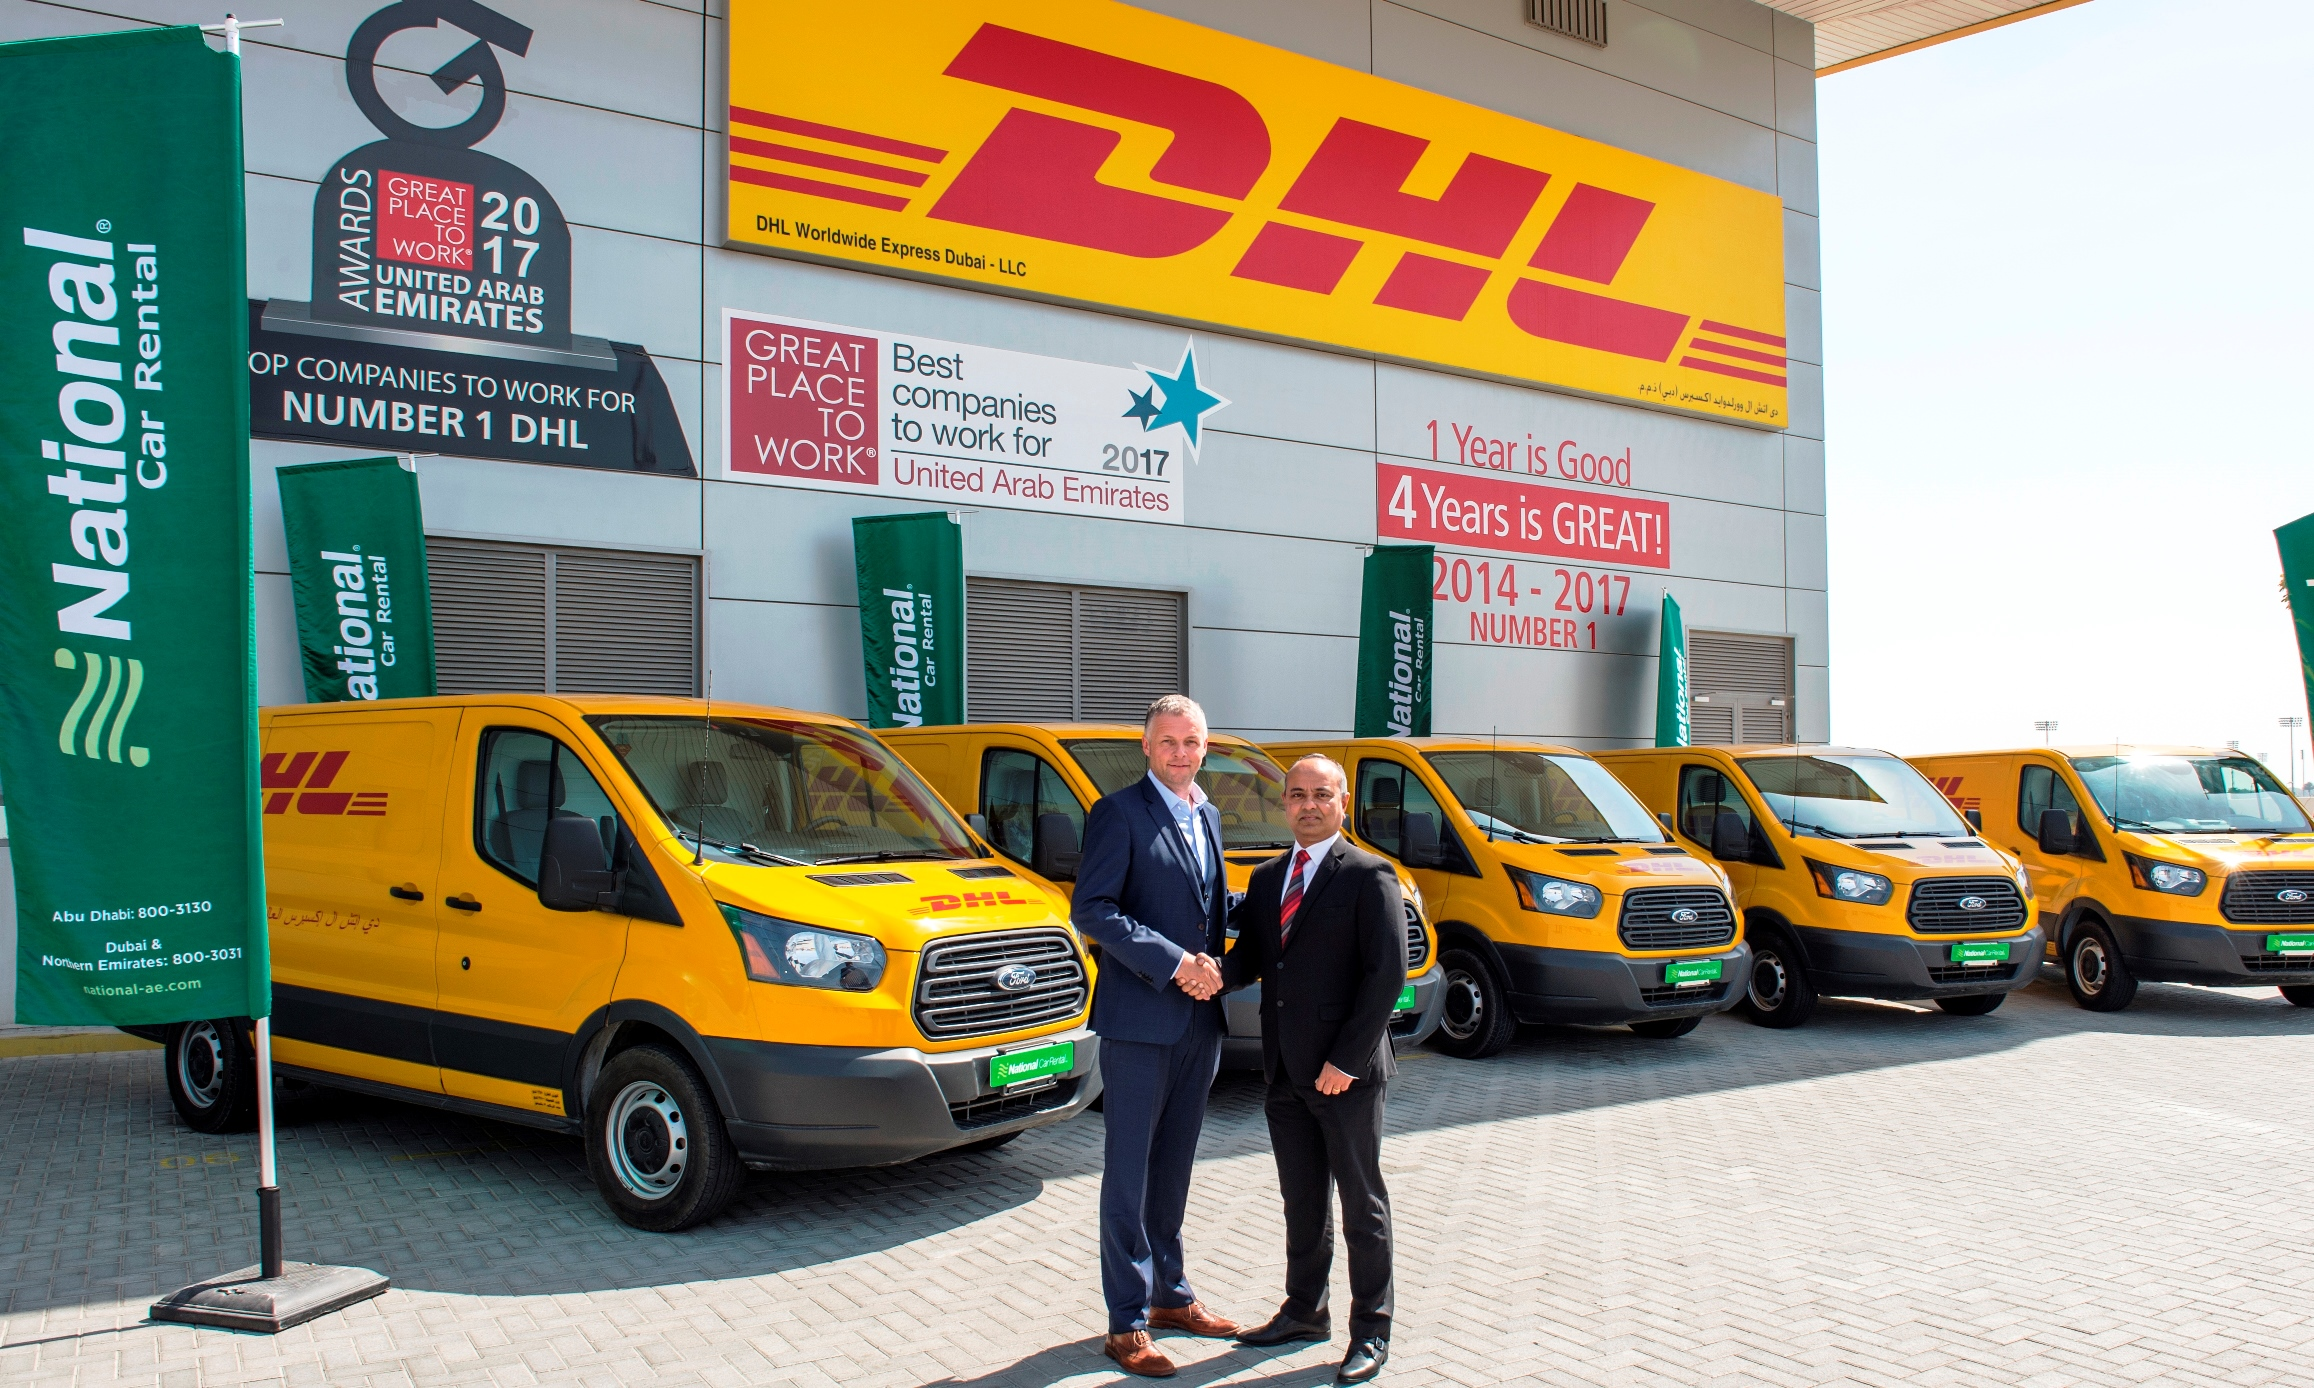 Ford Transit vans will help DHL get more women drivers in UAE